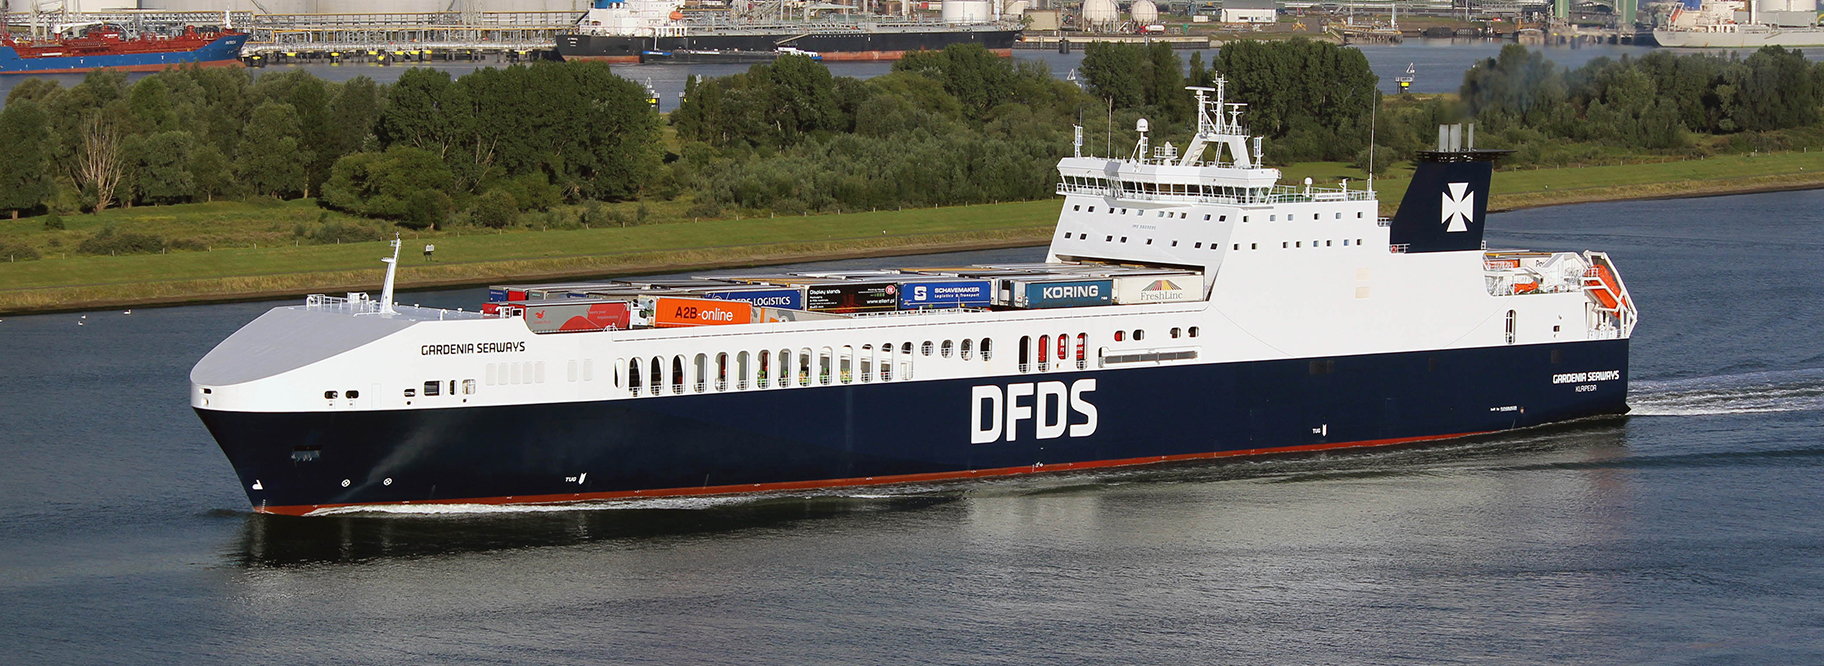 DFDS Tulipa Seaways 5 T-ISS Safety Suppliers